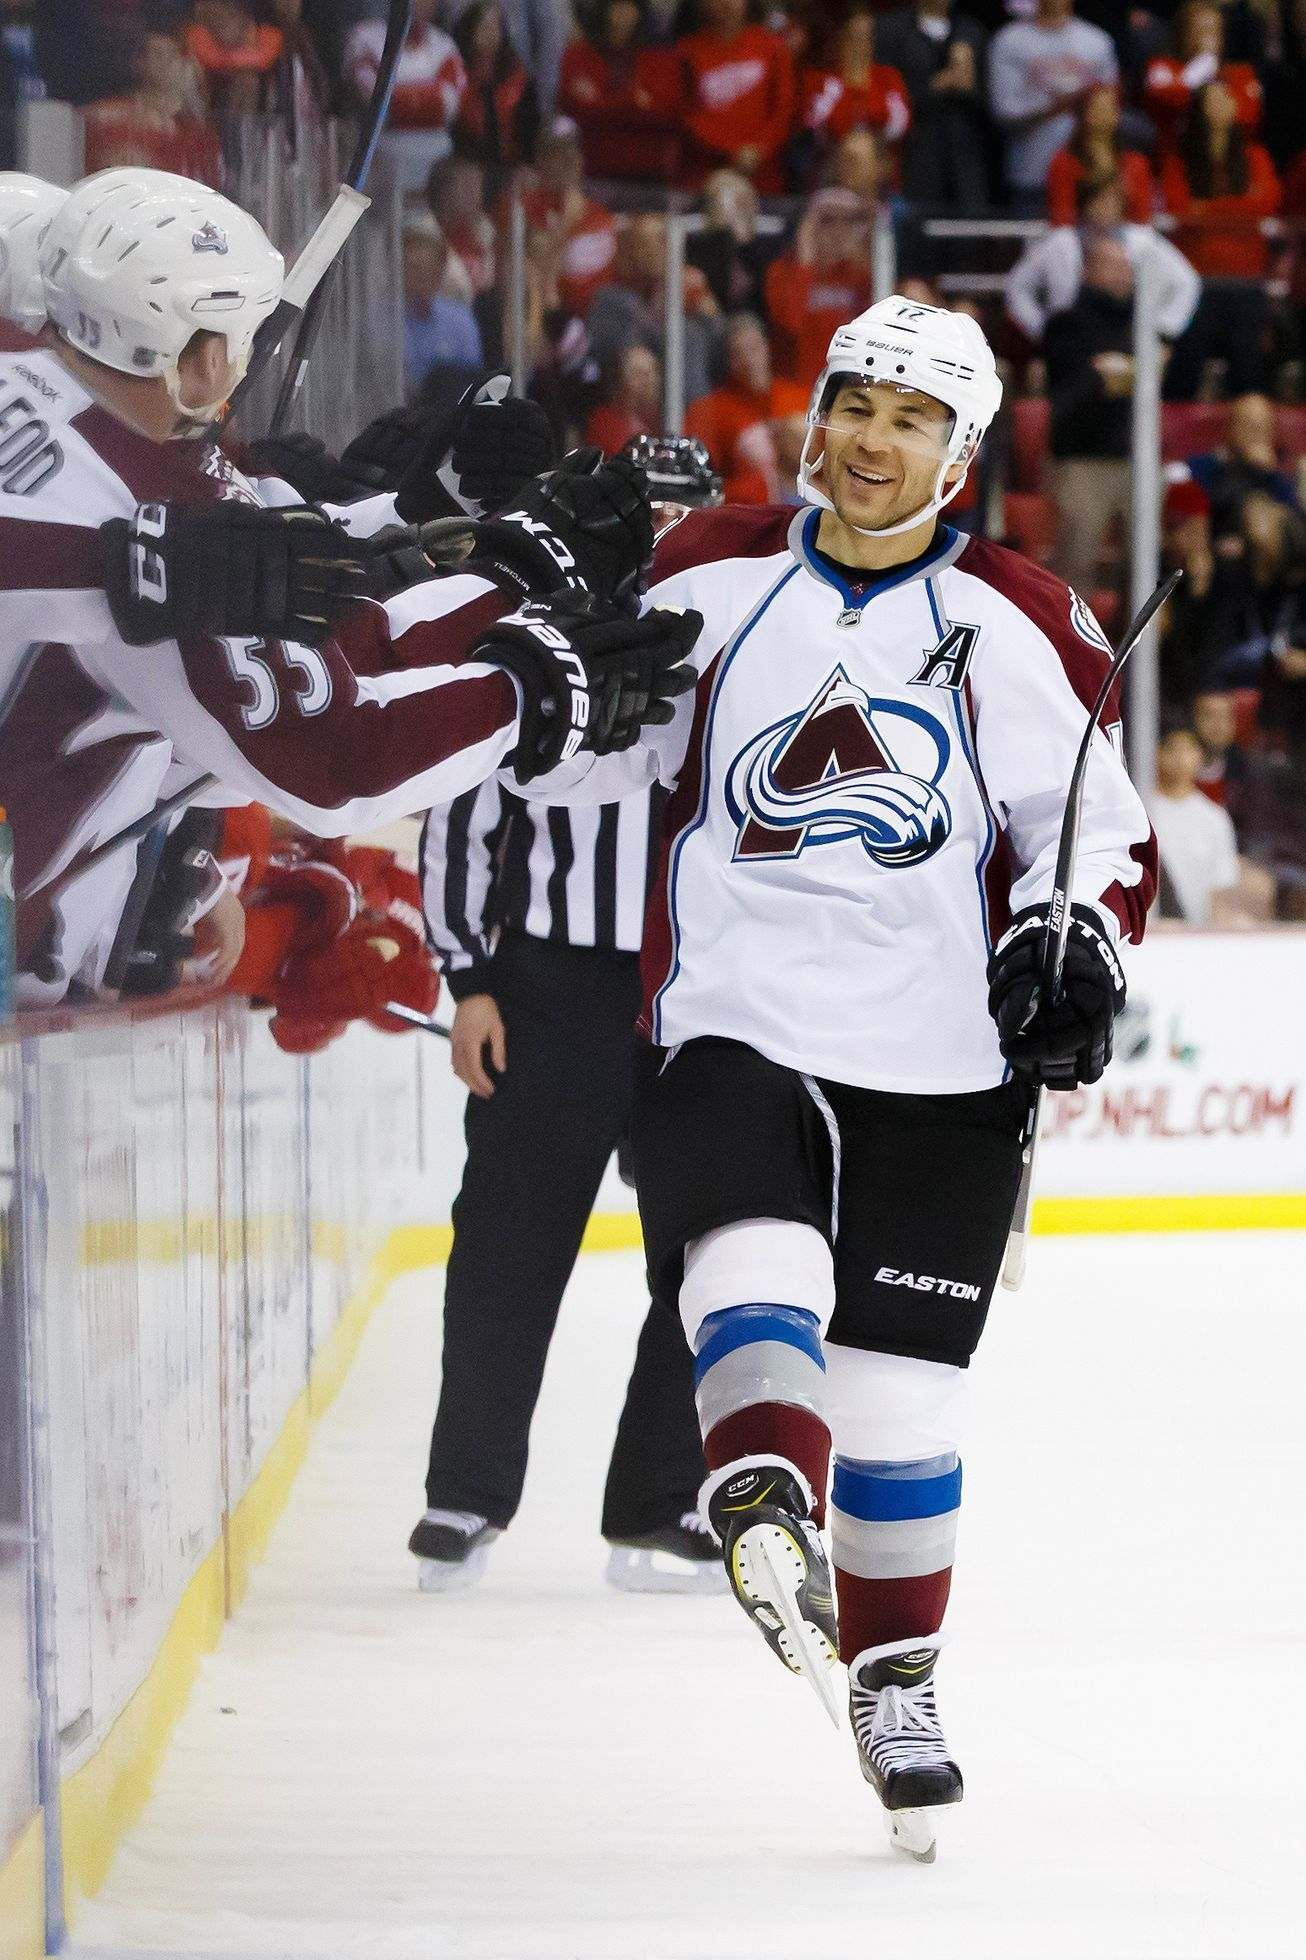 NHL: Colorado Avalanche at Detroit Red Wings (Jarome Iginla)